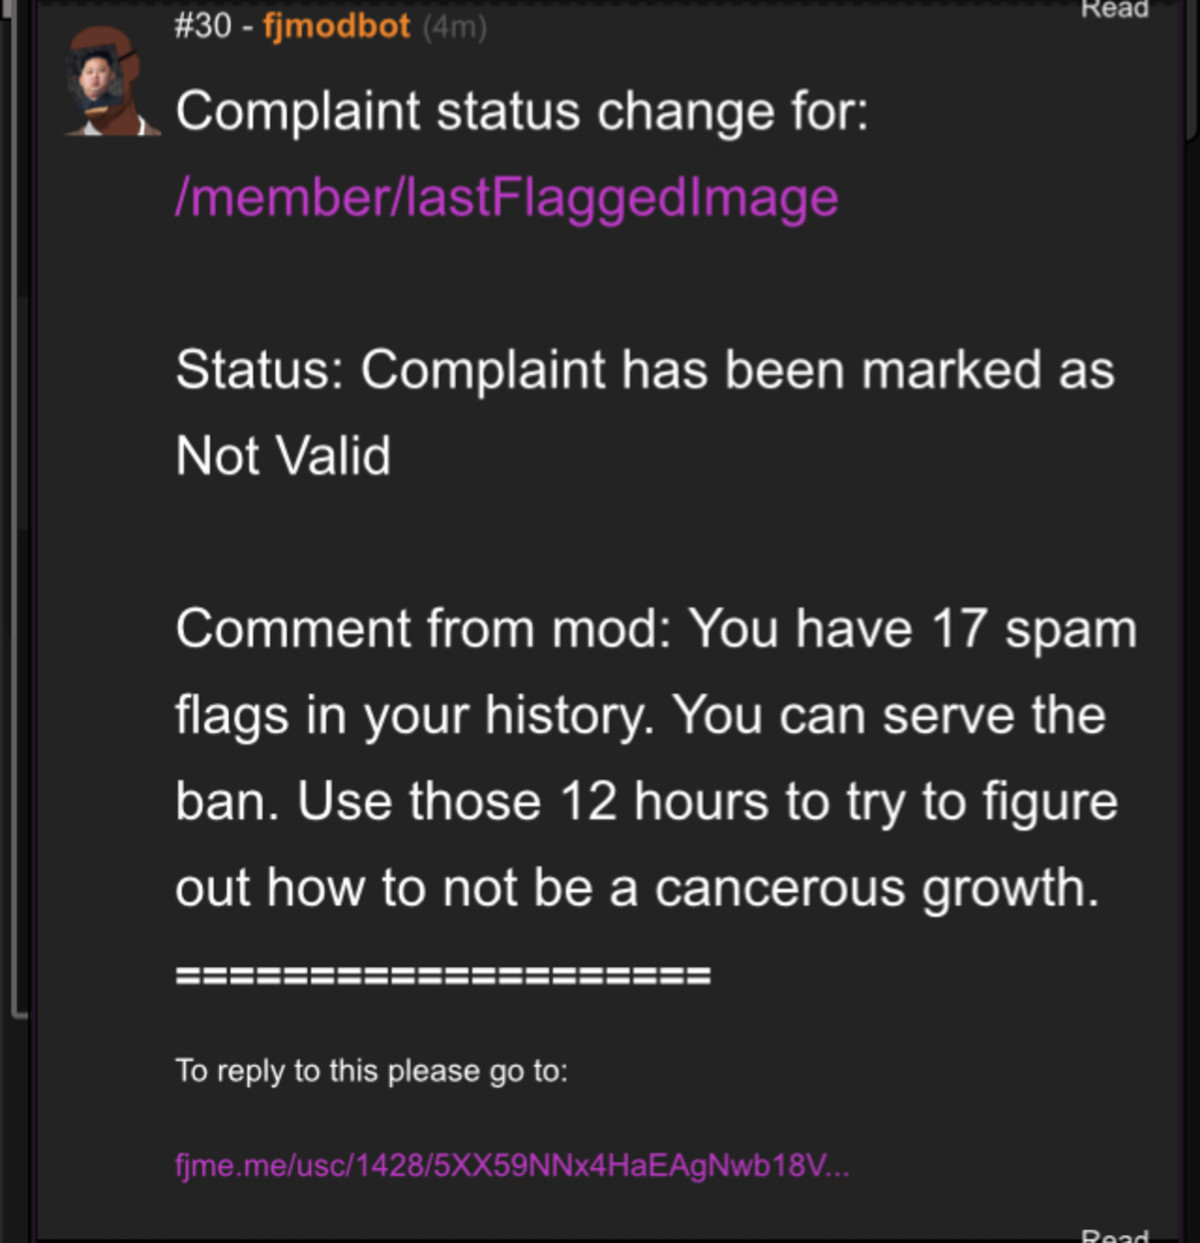 241:outta context: fjmodbot I am sorry release flagged posts. Release my flagged post so I can see what you flagged moderator!I am sorry I just want to see them